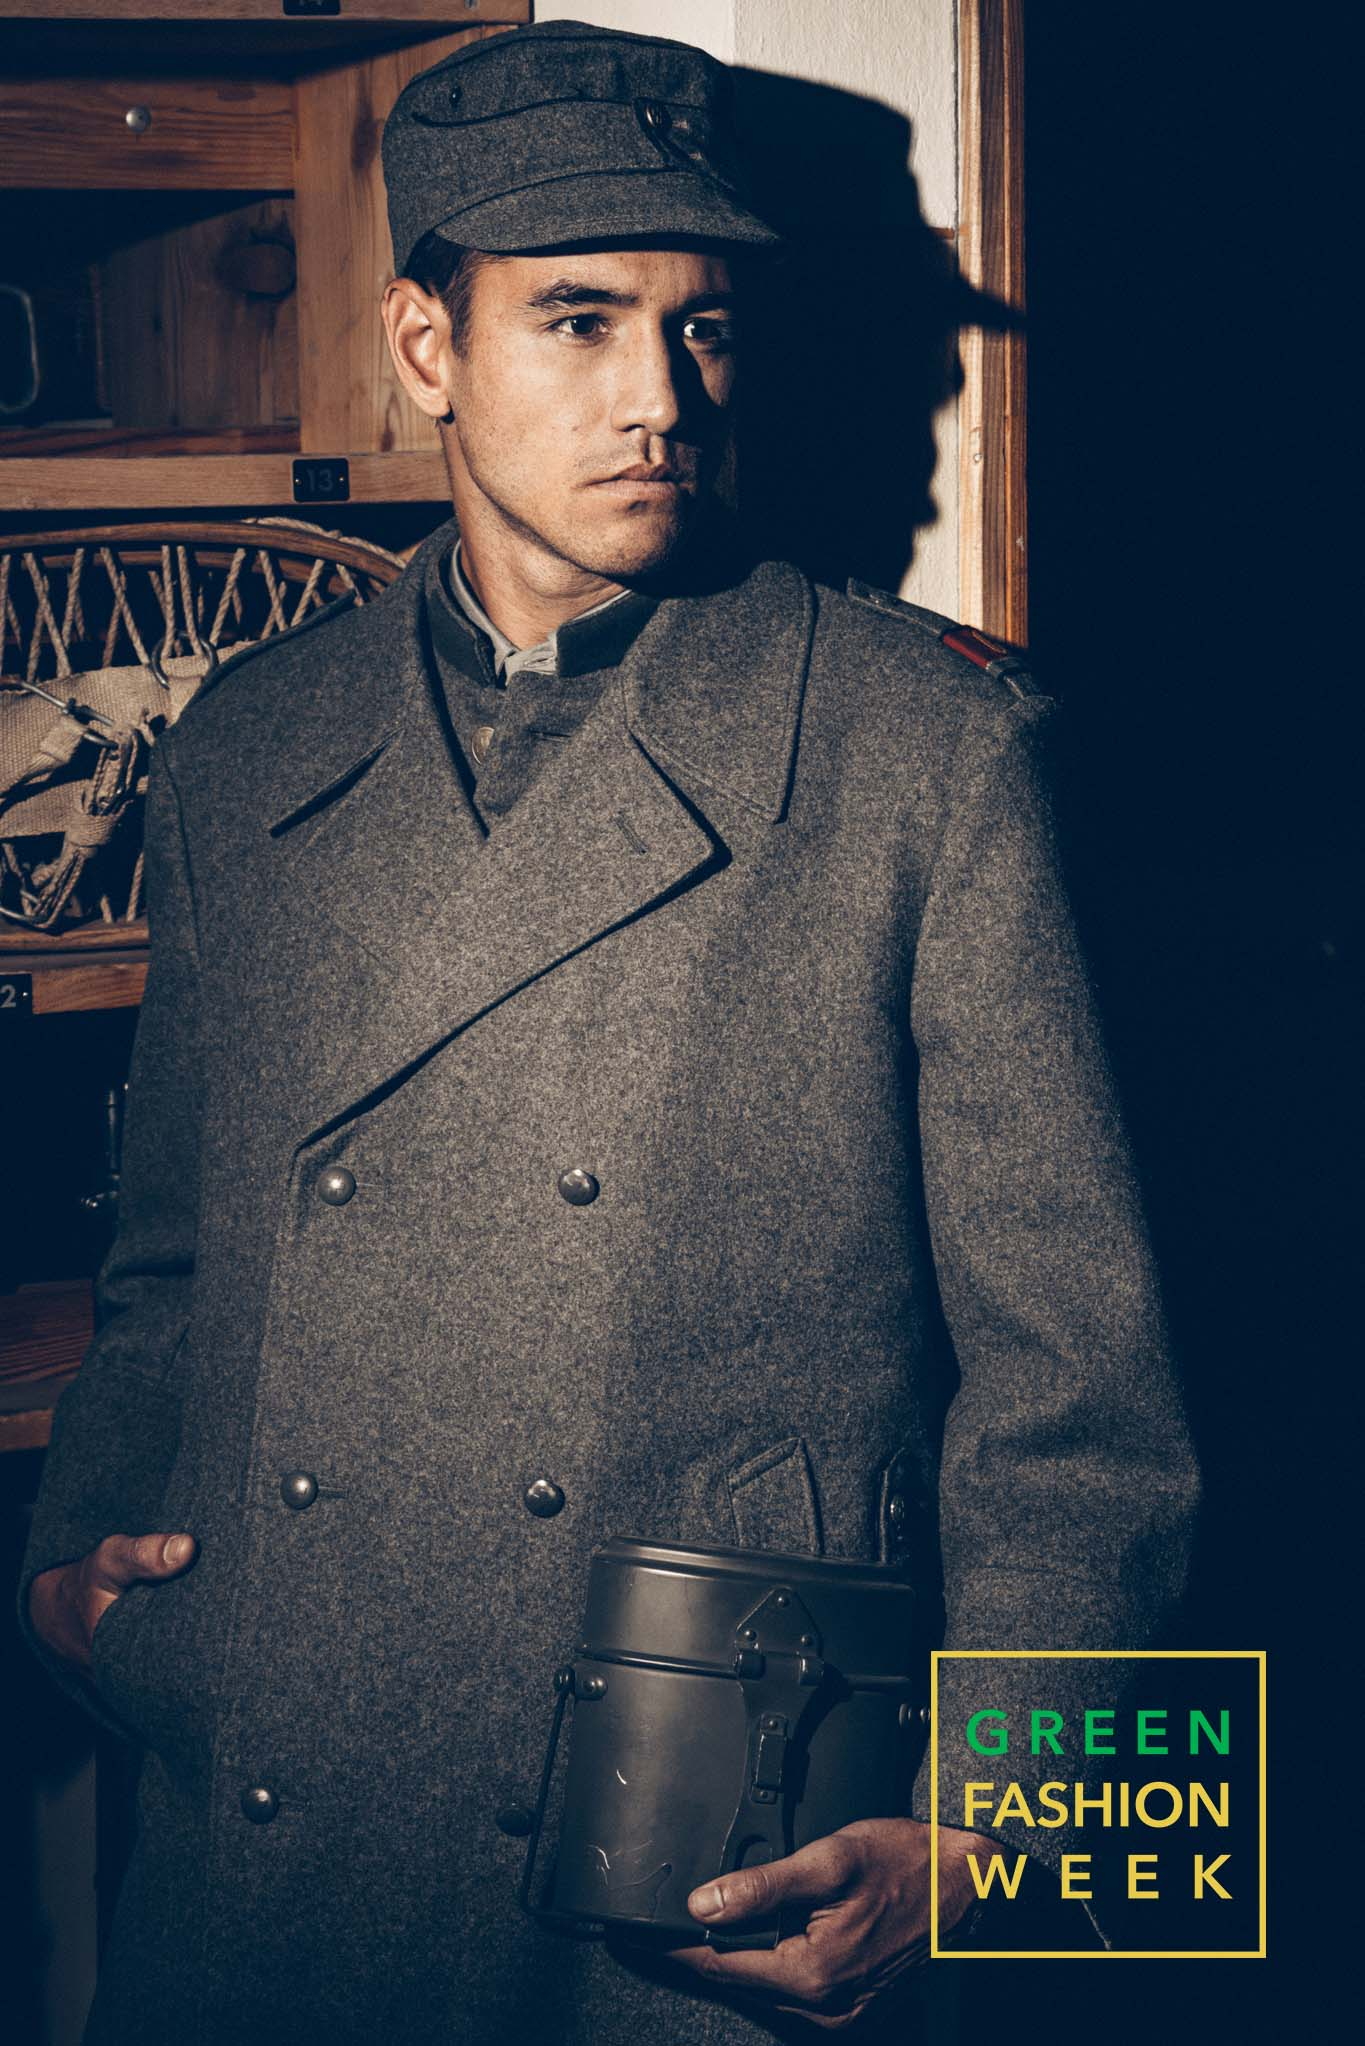 Model Mark Chanloung dressed with Museum's World War II uniforms. Photo Credit: Vittorio La Fata | www.vittoriolafata.it